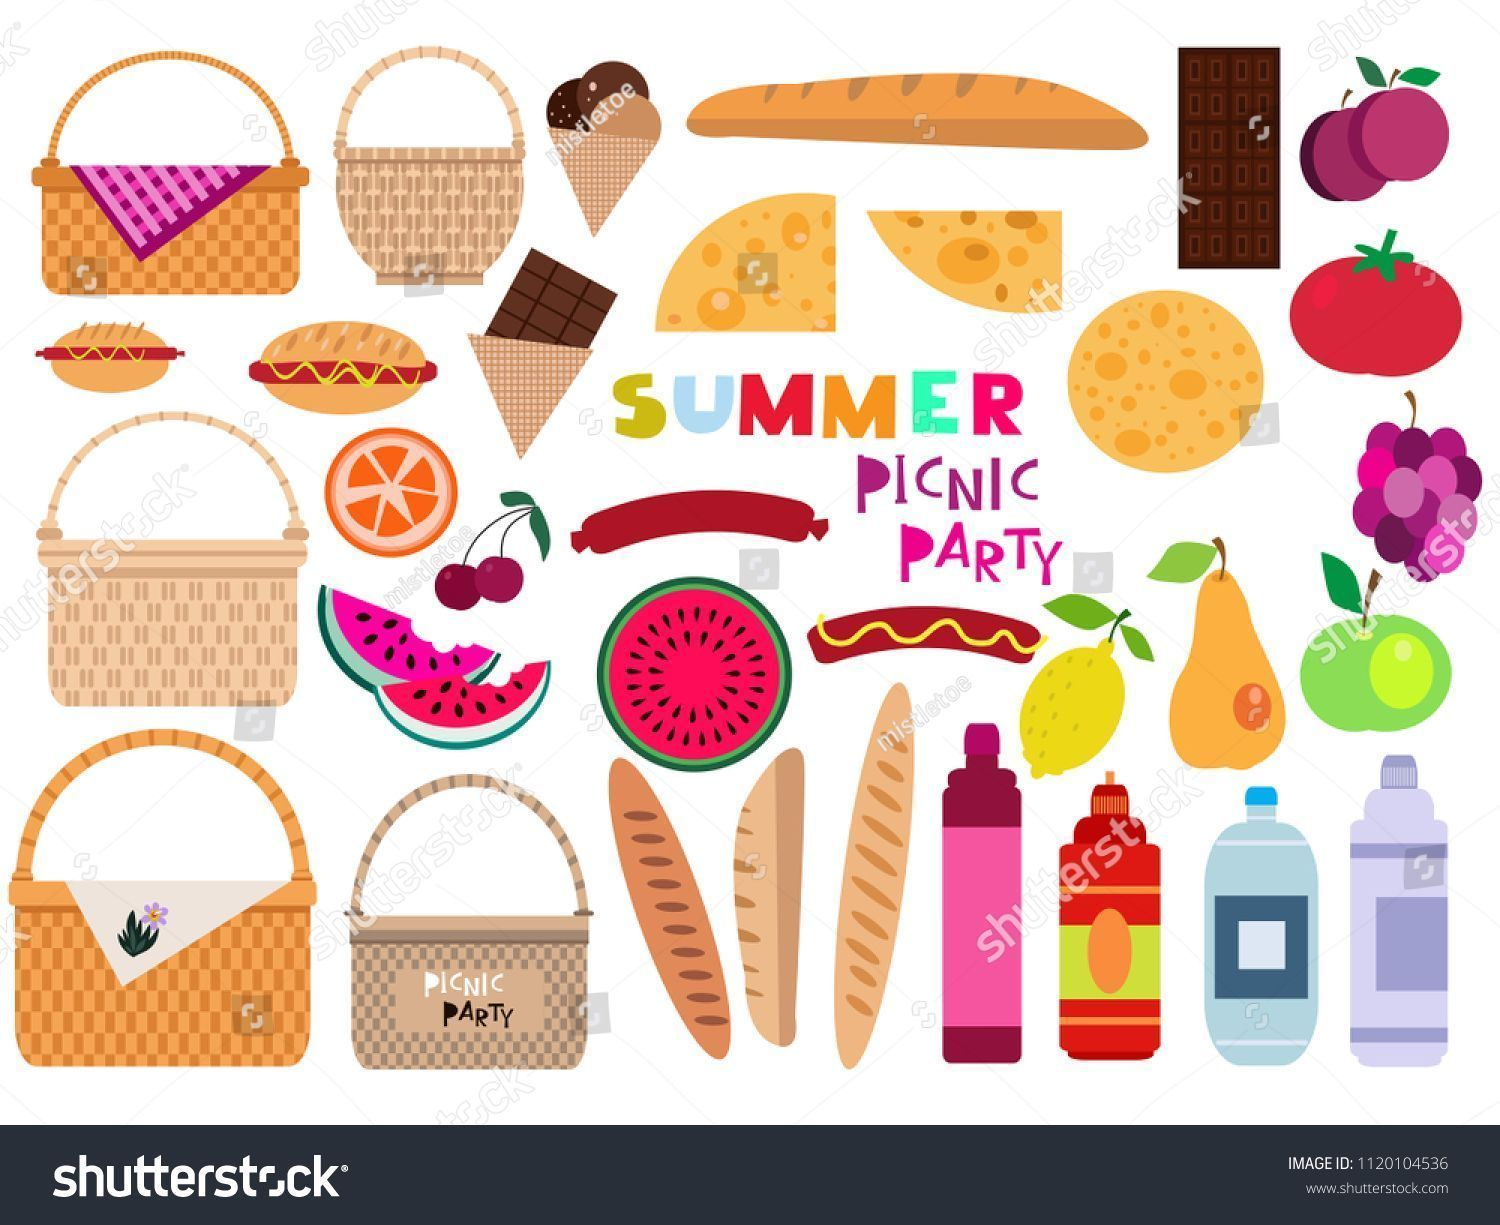 Summer Family Picnic Concept With Basket Food And Fruits Vector Illustration In Flat Cartoon Style Sponsor Family Picnic Cartoon Styles Family Picnic Foods